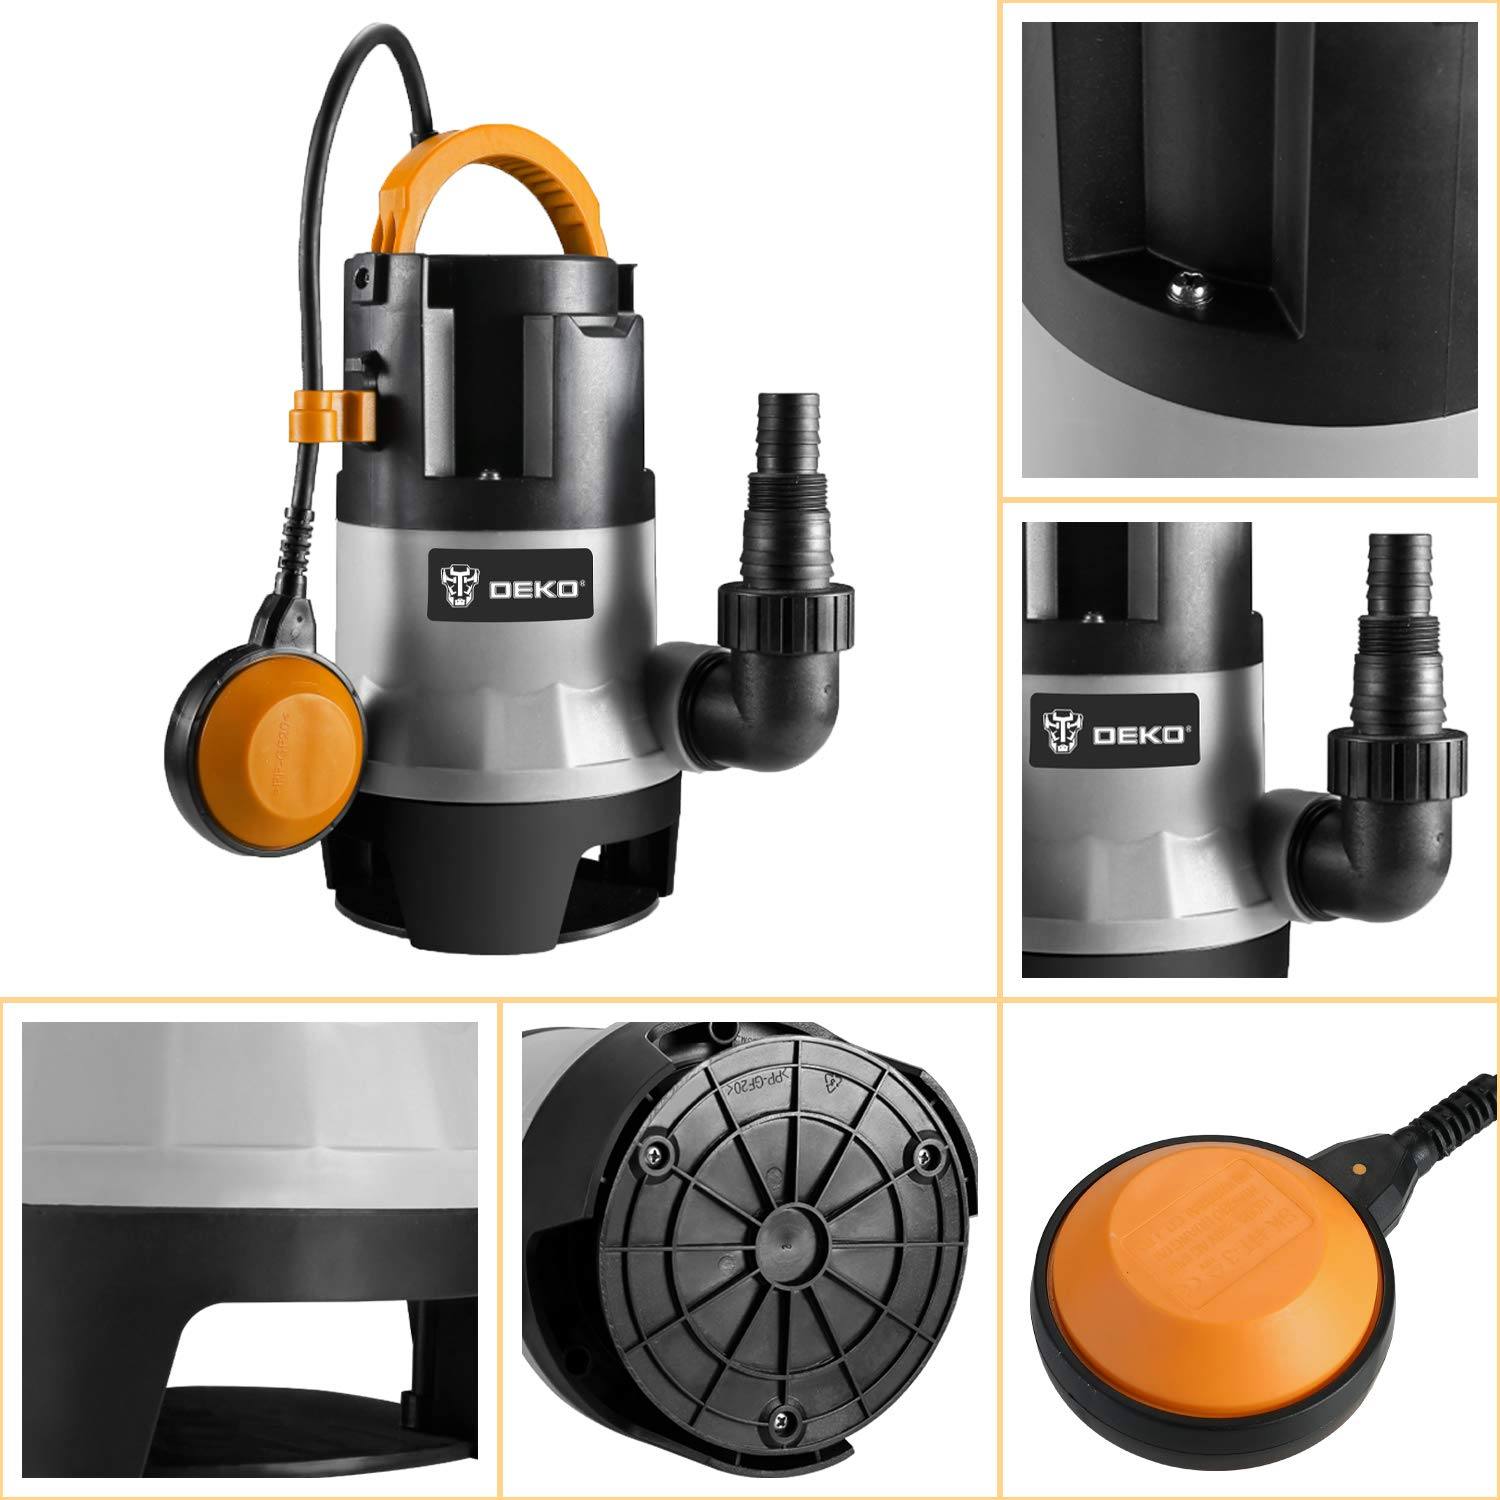 DEKO Sump Pump 1HP 3302GPH 750W Submersible Clean/Dirty Water Pump Swimming Pool Garden Tub Pond Flood Drain w/Float Switch and Long 16ft Cable by DEKO (Image #5)